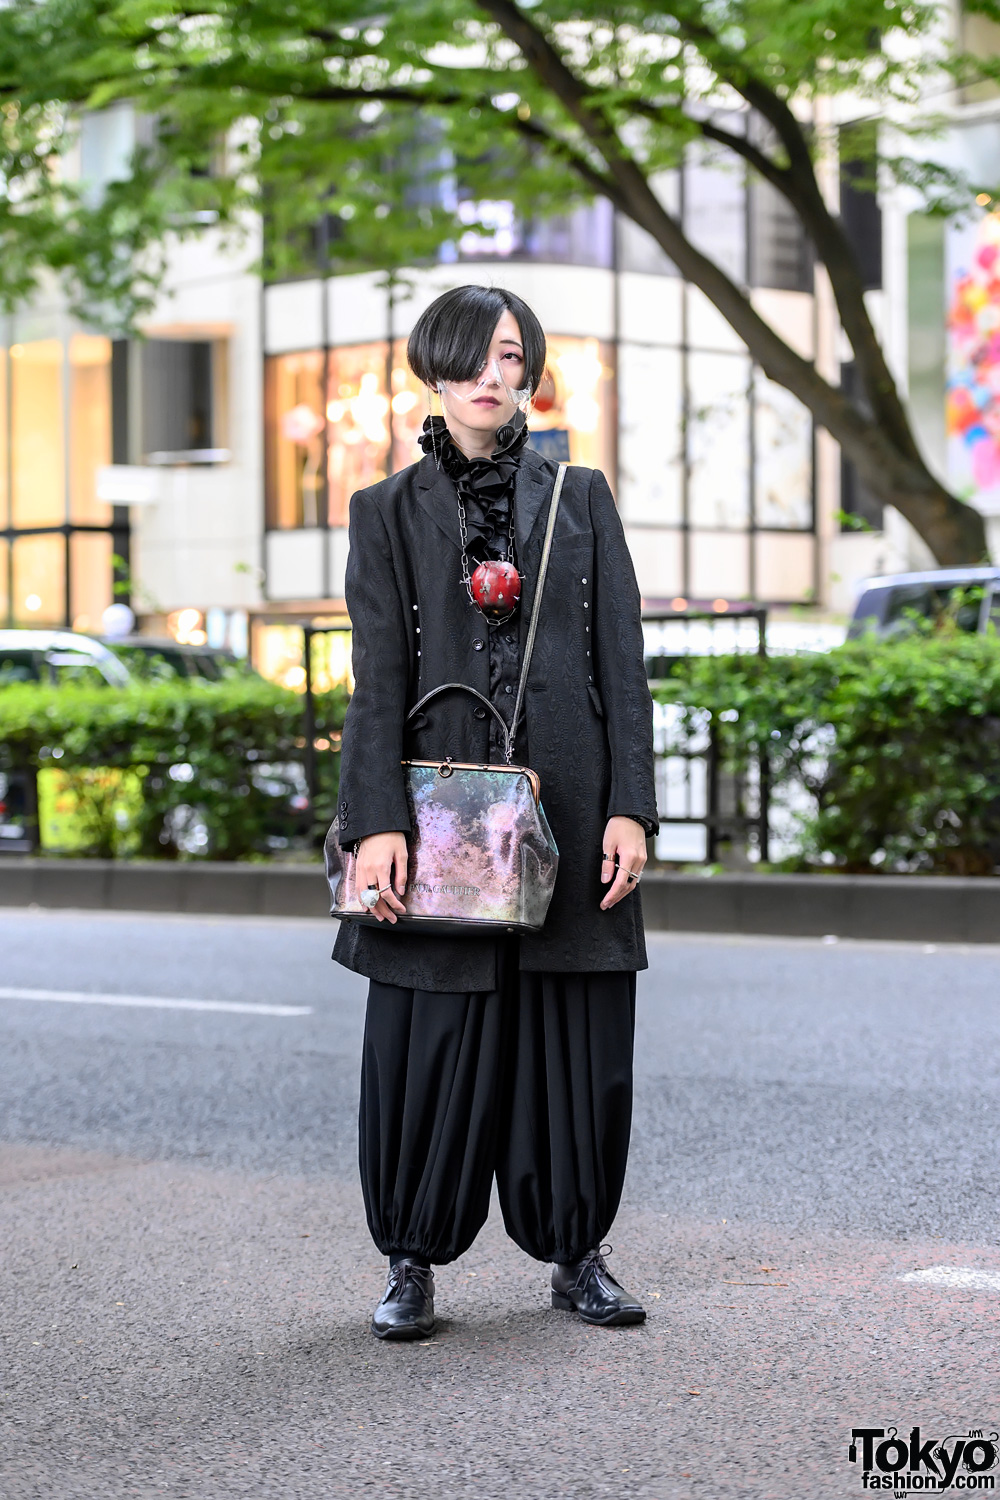 Dark Japanese Street Style w/ Clear Face Mask, Moi meme Moitie, Jean Paul Gaultier, CGD, Yohji Yamamoto & Suppurate System Nail Apple